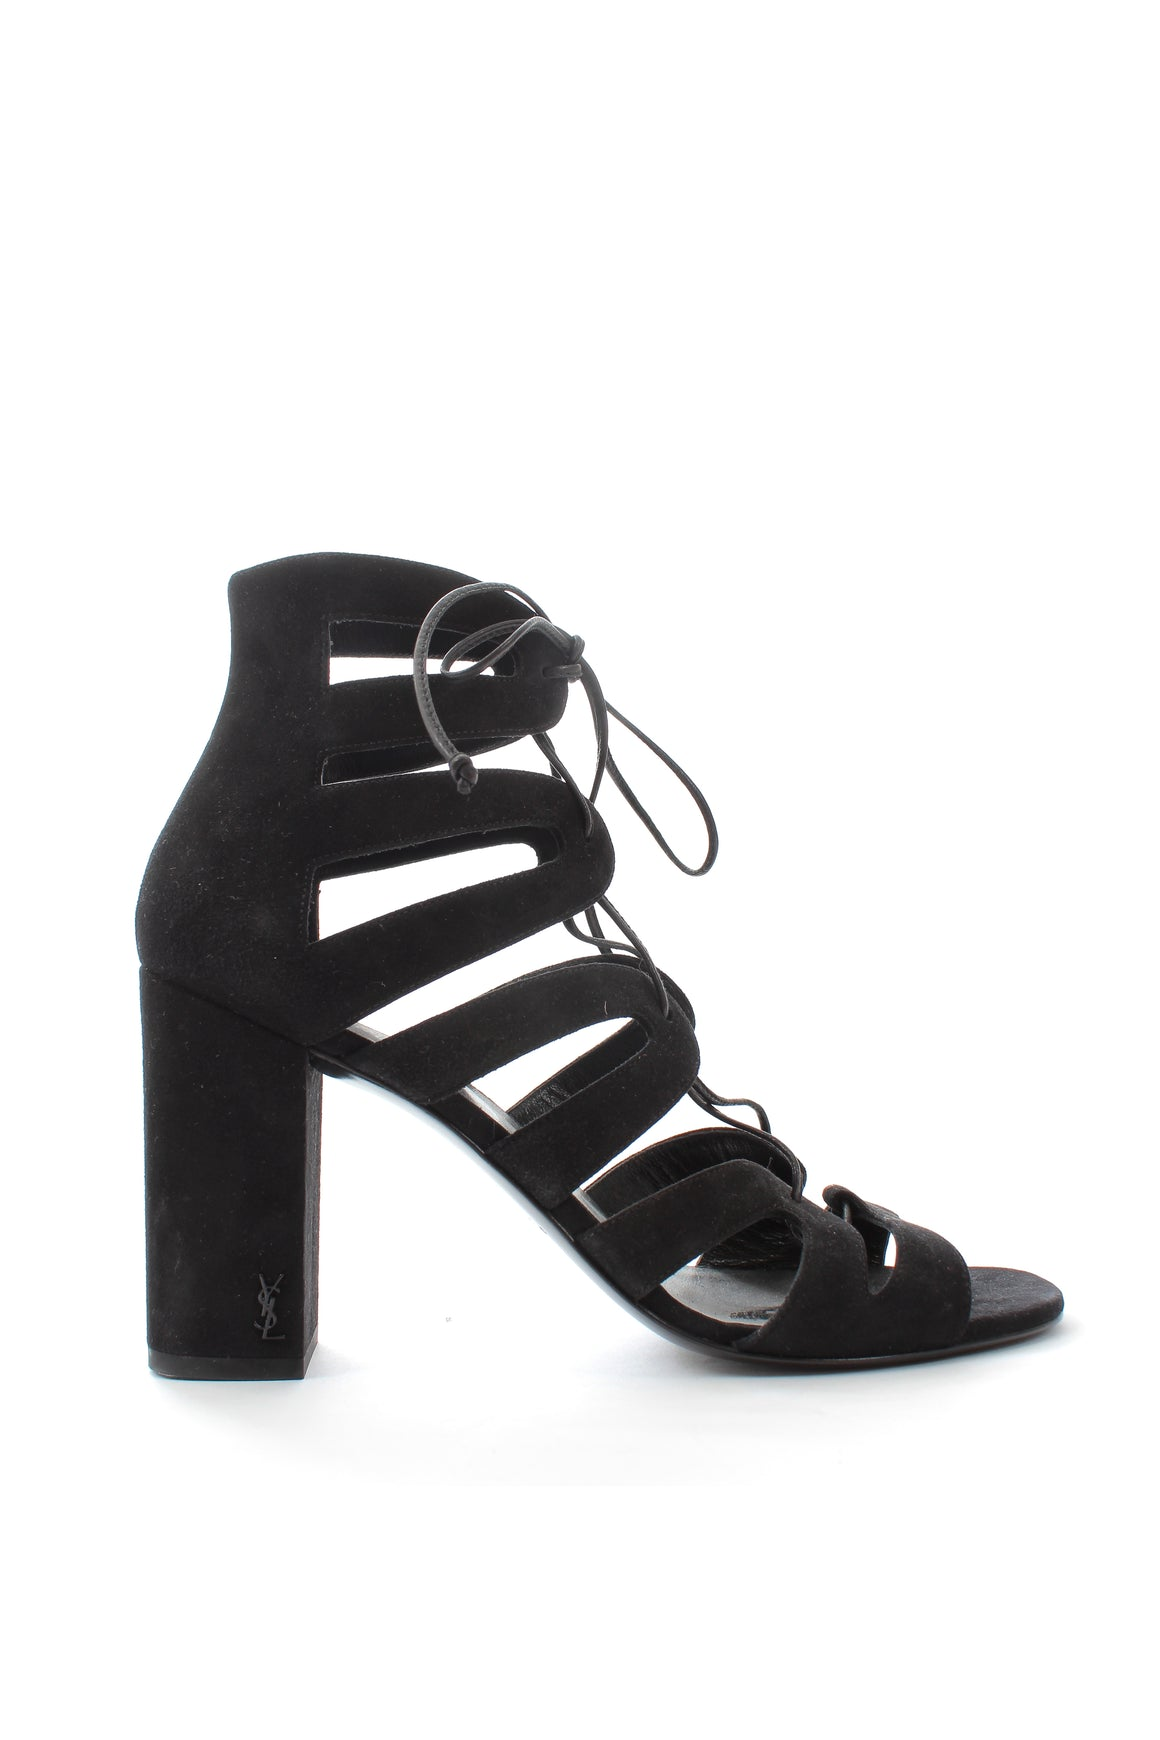 Saint Laurent Babies Lace Up Suede Sandals